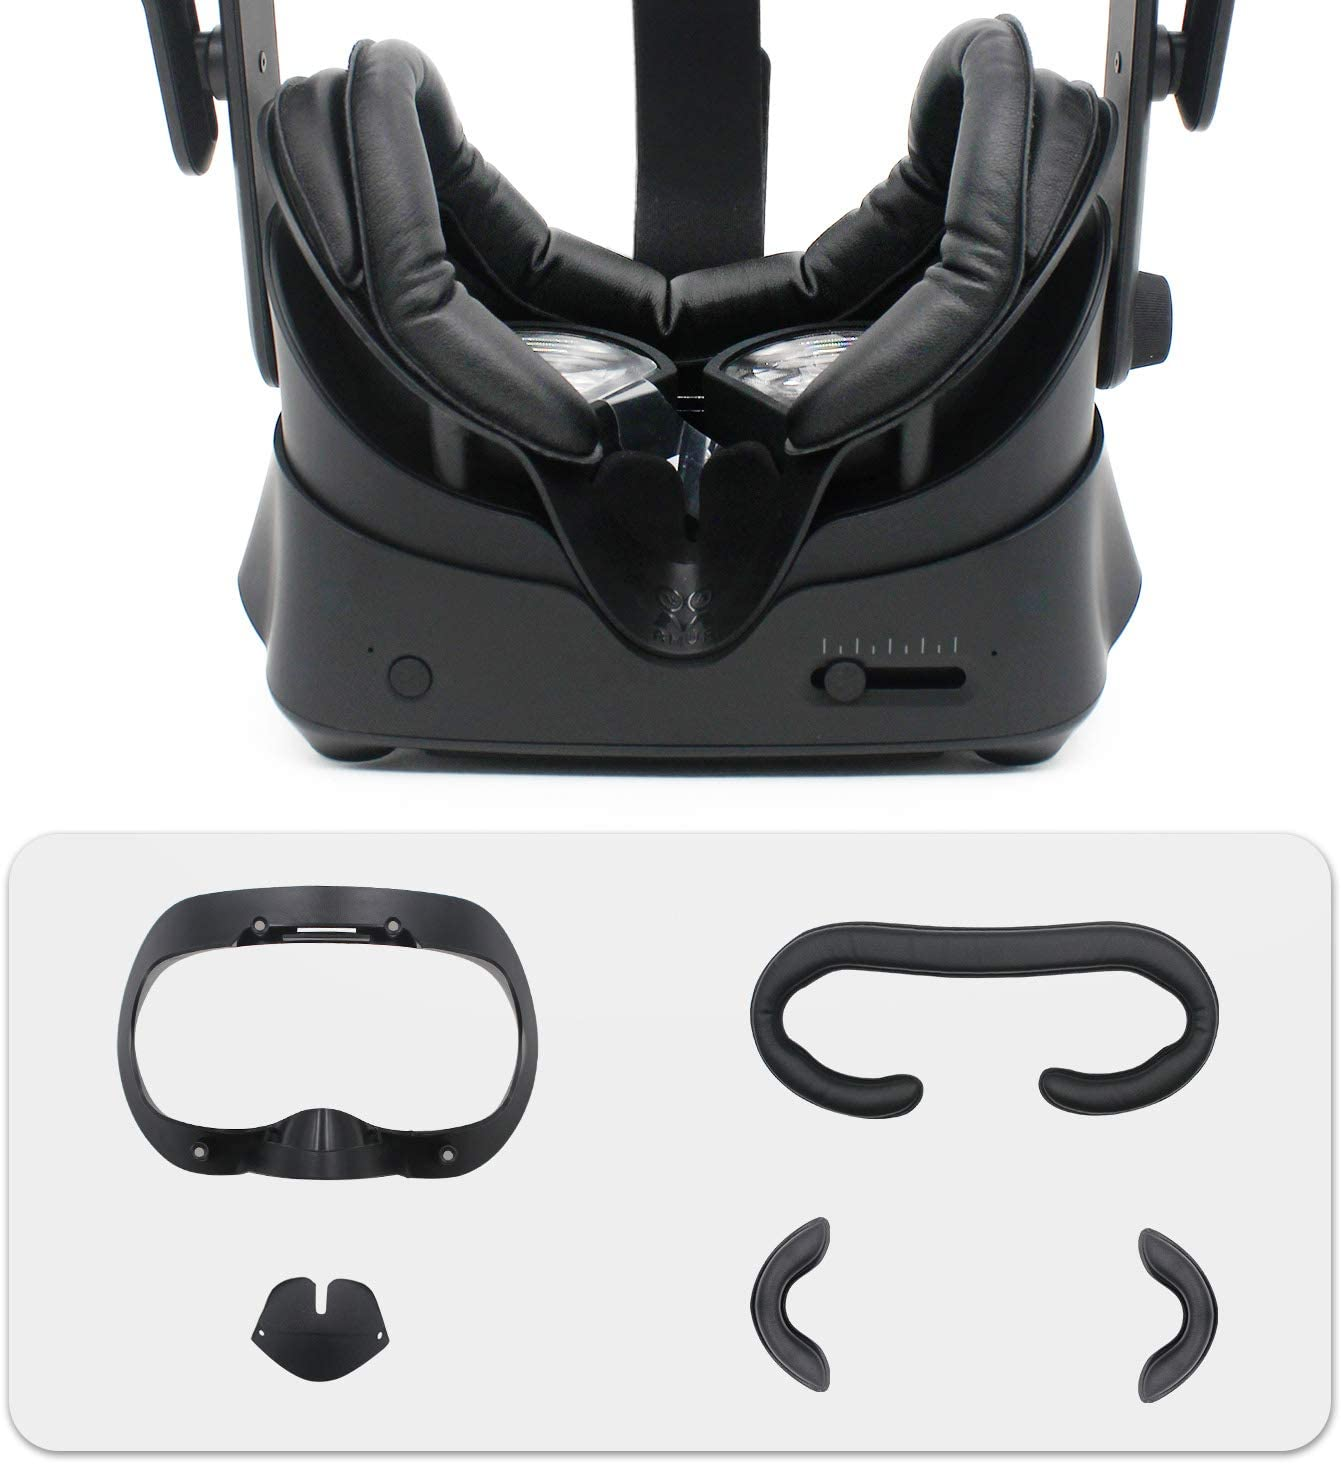 AMVR Facial Interface Bracket & PU Leather Foam Face Cover Pad Replacement & Anti-Leakage Nose Pad & Protective Lens Cover Comfort Set for Valve Index Headset